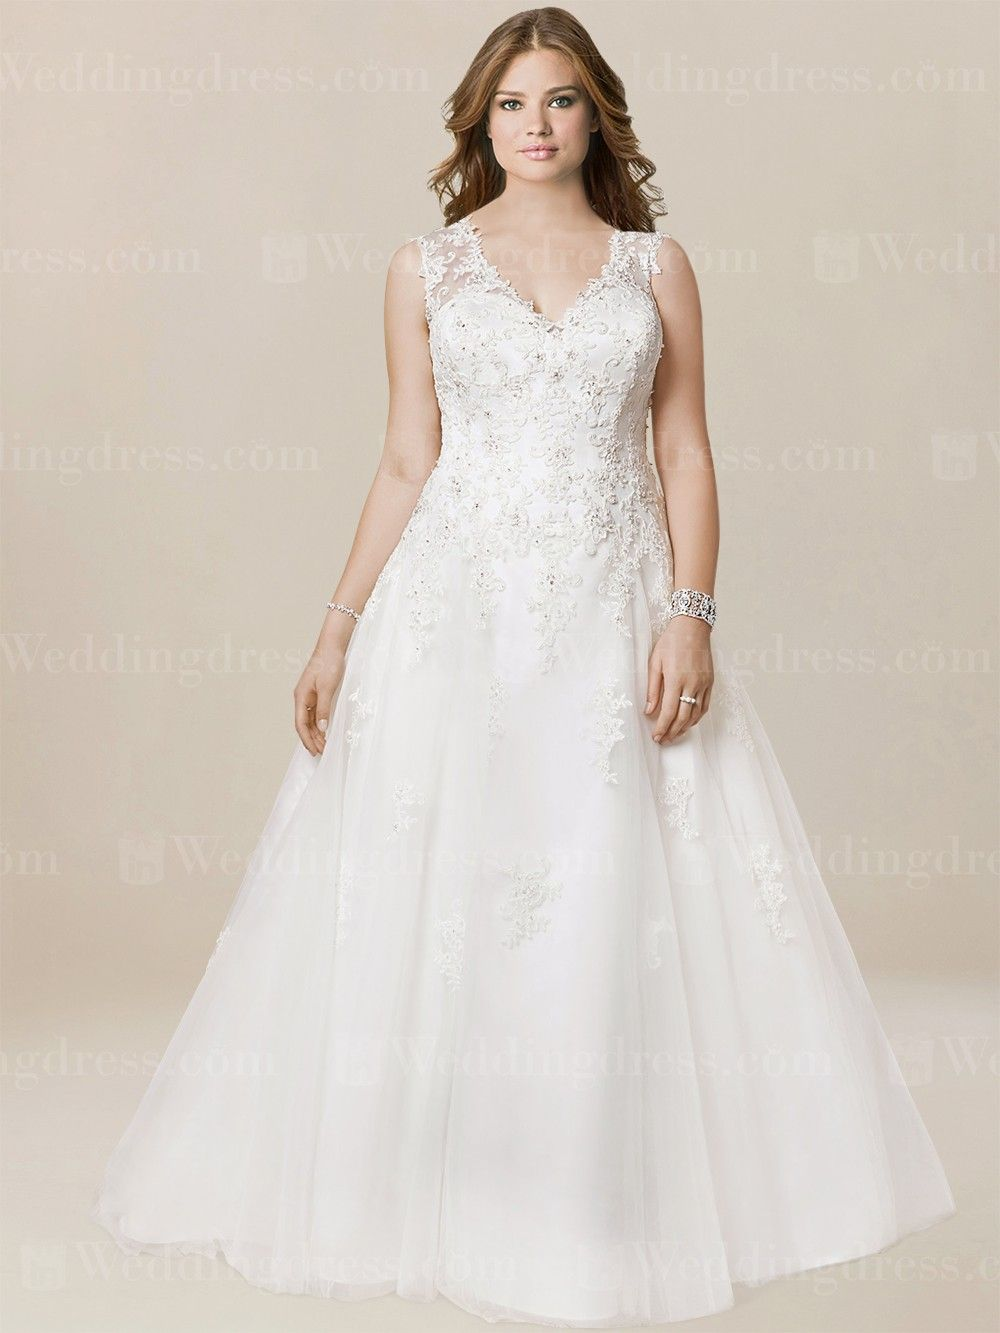 Plus Size Casual Wedding Dress PS203 | Pinterest